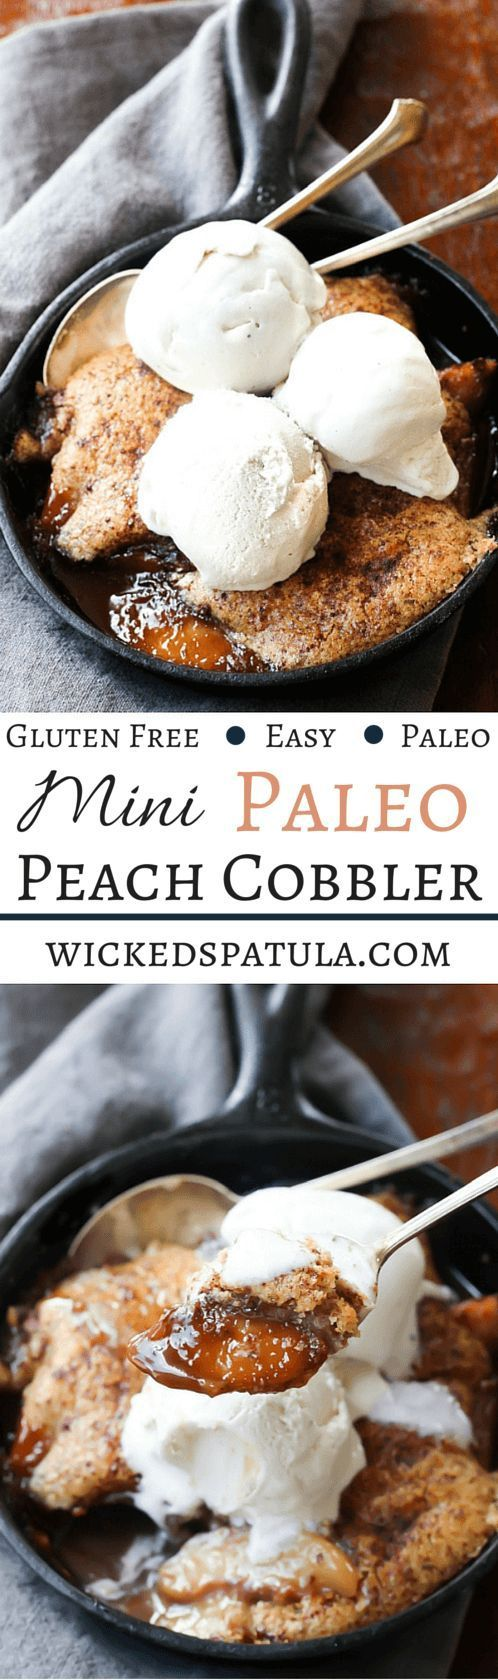 Mini Paleo Peach Cobbler! This easy Paleo dessert is perfect for two ...